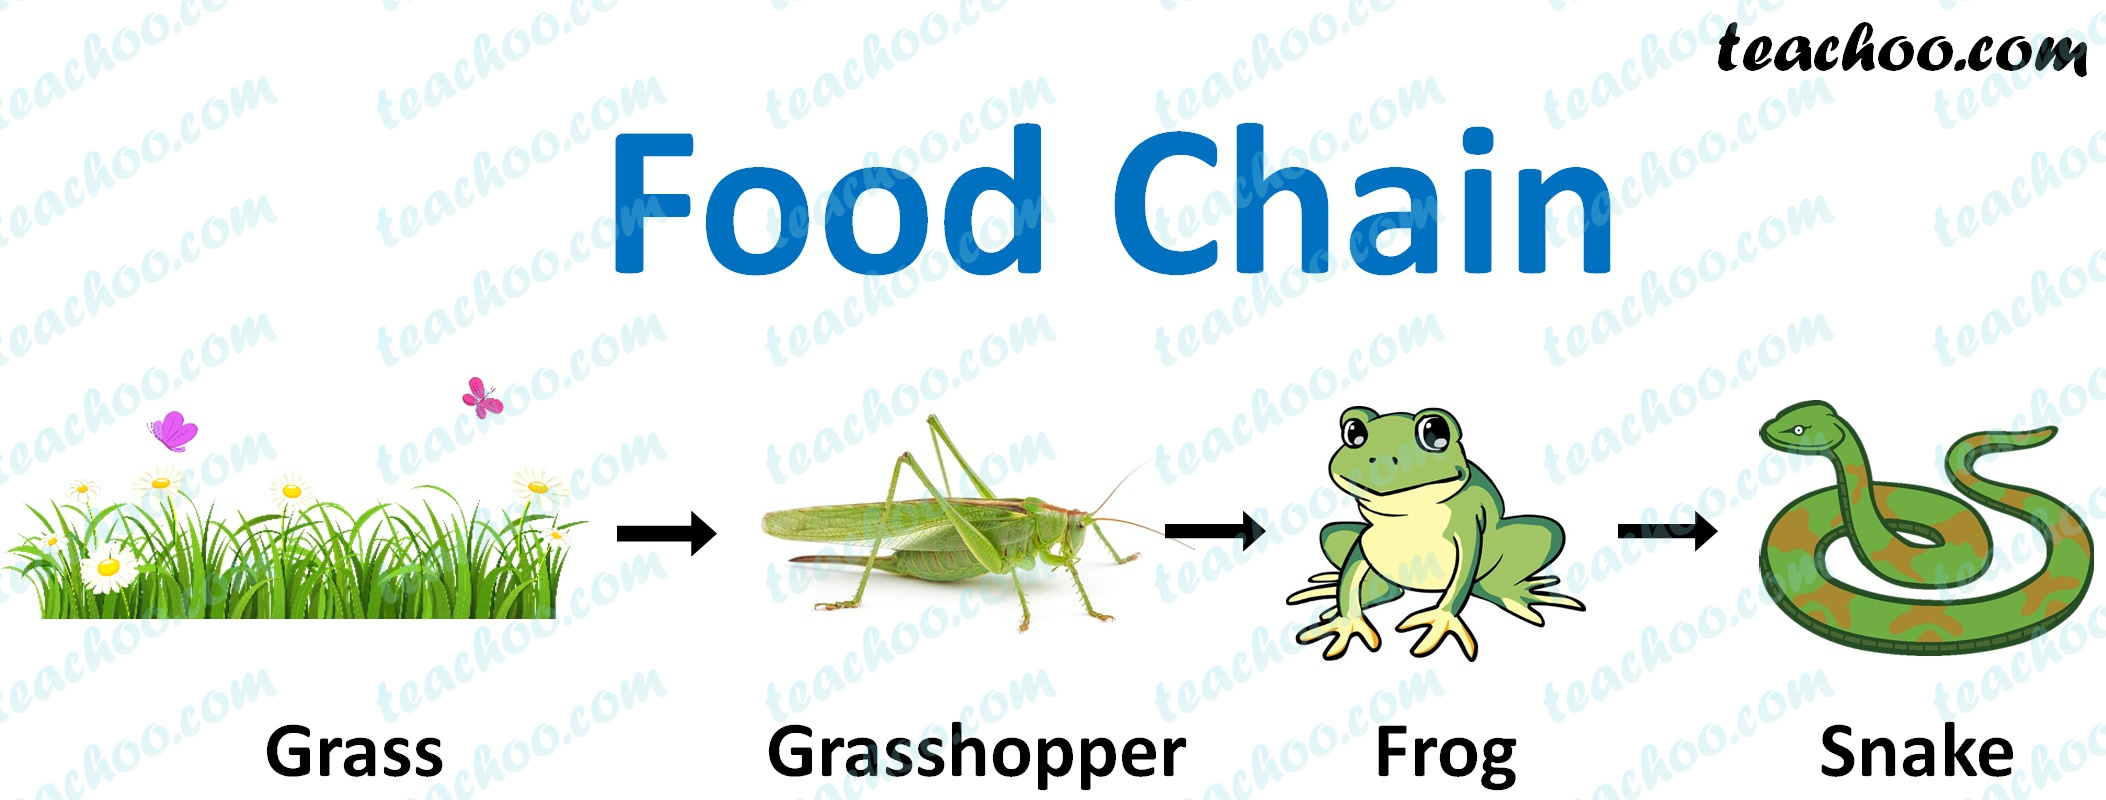 food-chain-q1-page-260---teachoo.jpg